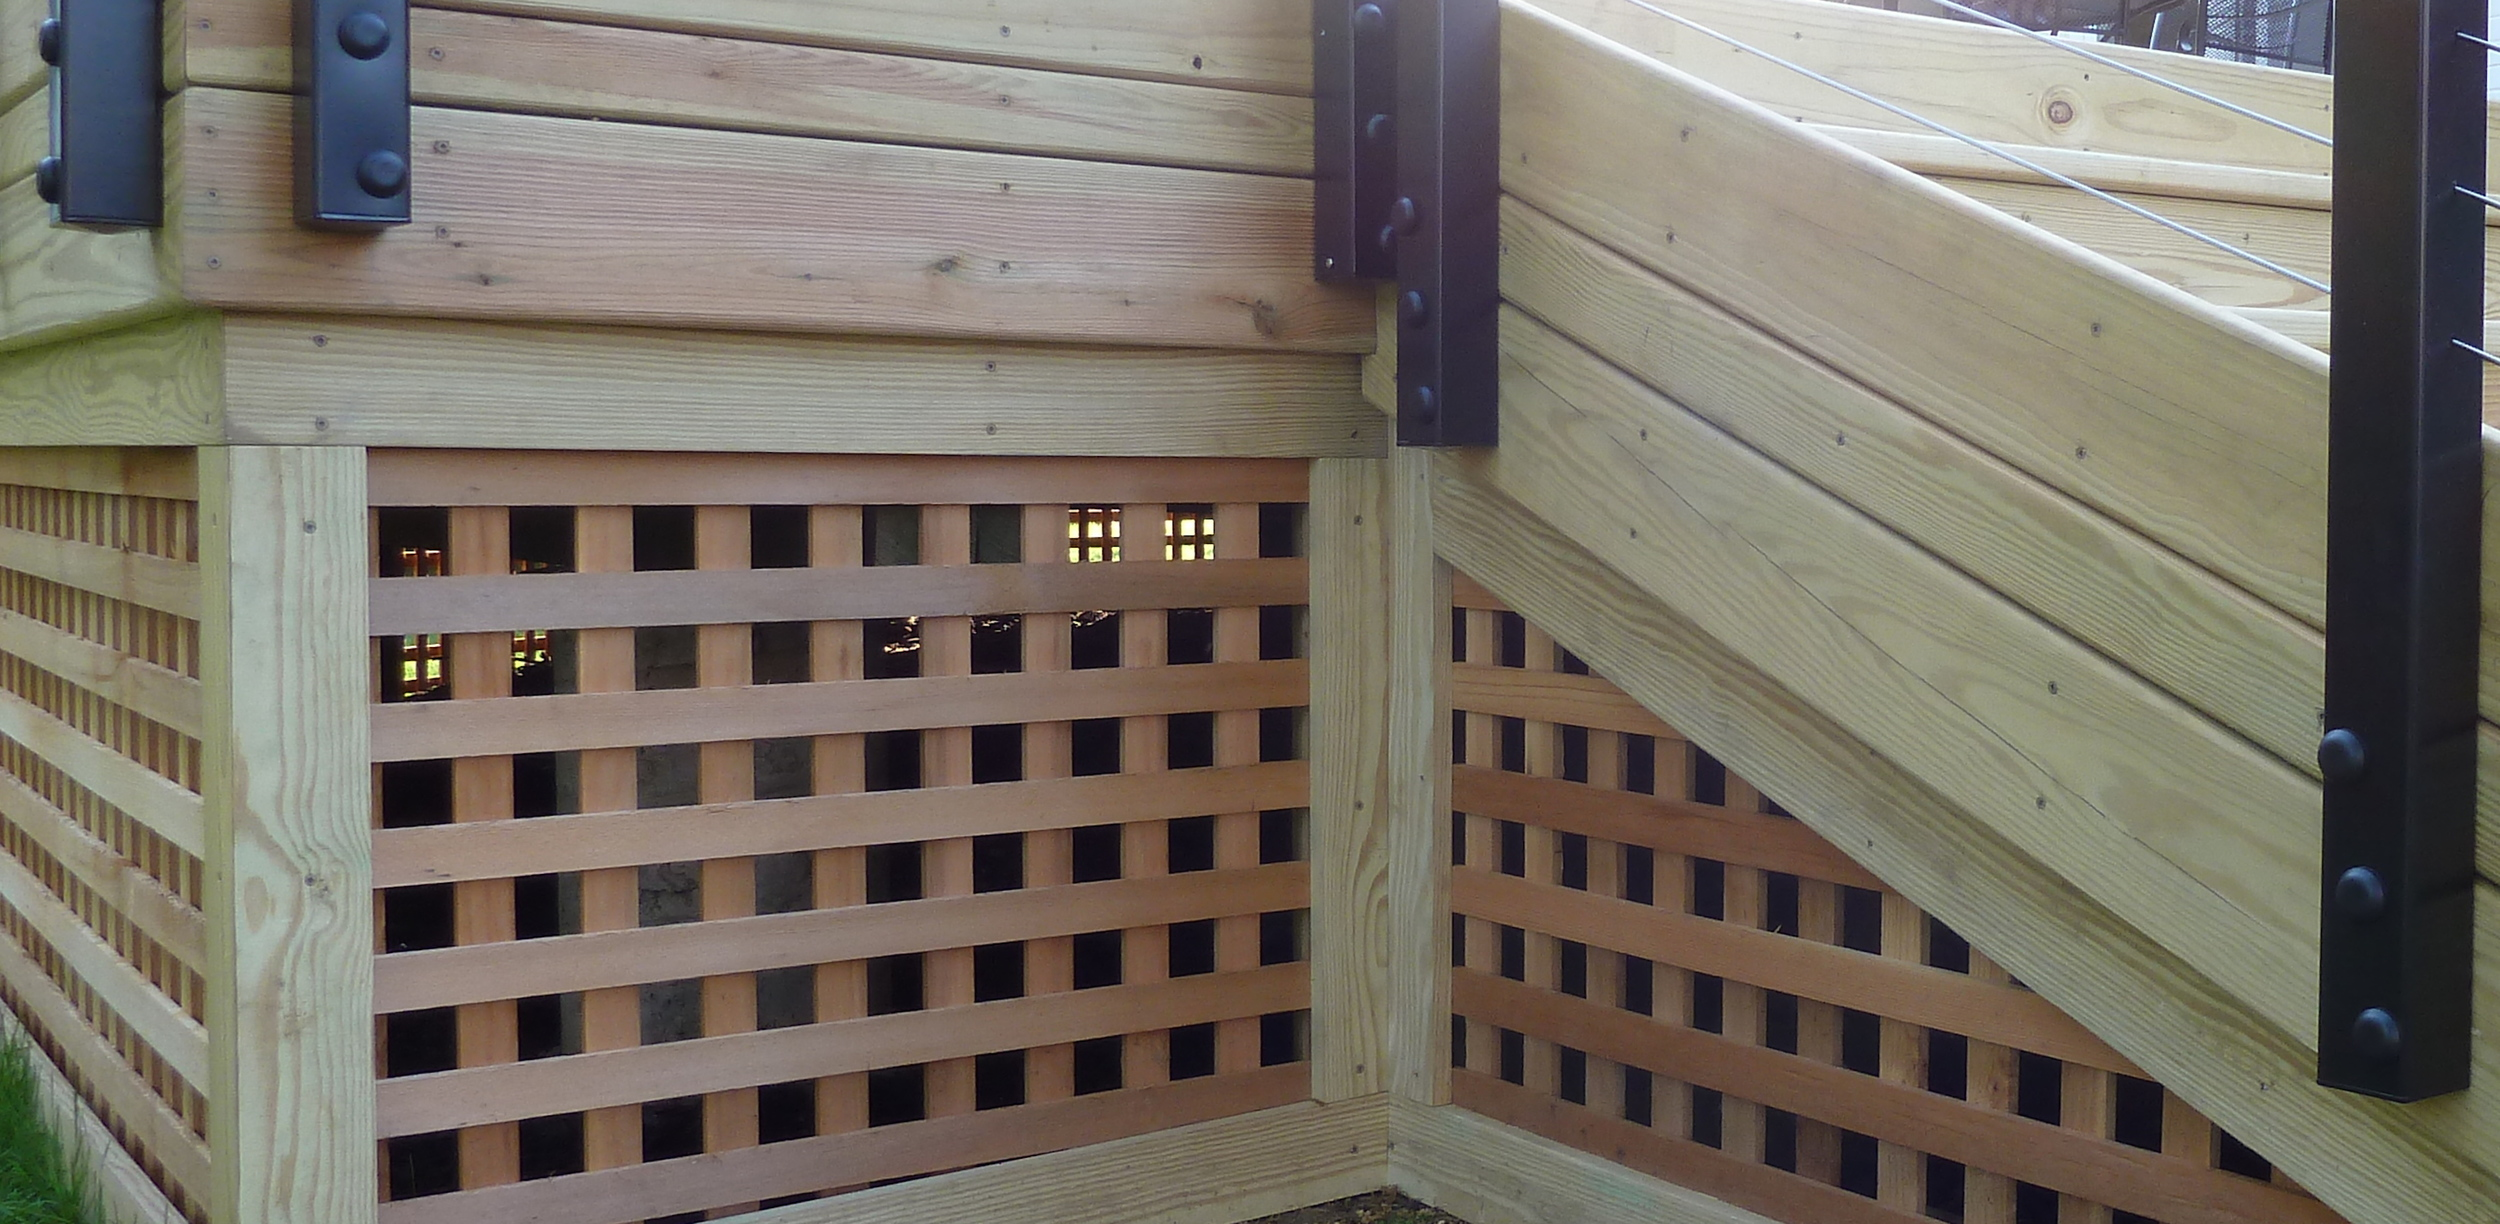 Notice how the deck lattice work creates a truly finished look to your deck.  No unsightly holes.  No dark spaces.  A beautifully finished deck that only enhances the beauty of your home.  This deck looks great not only from your home, but also your yard!